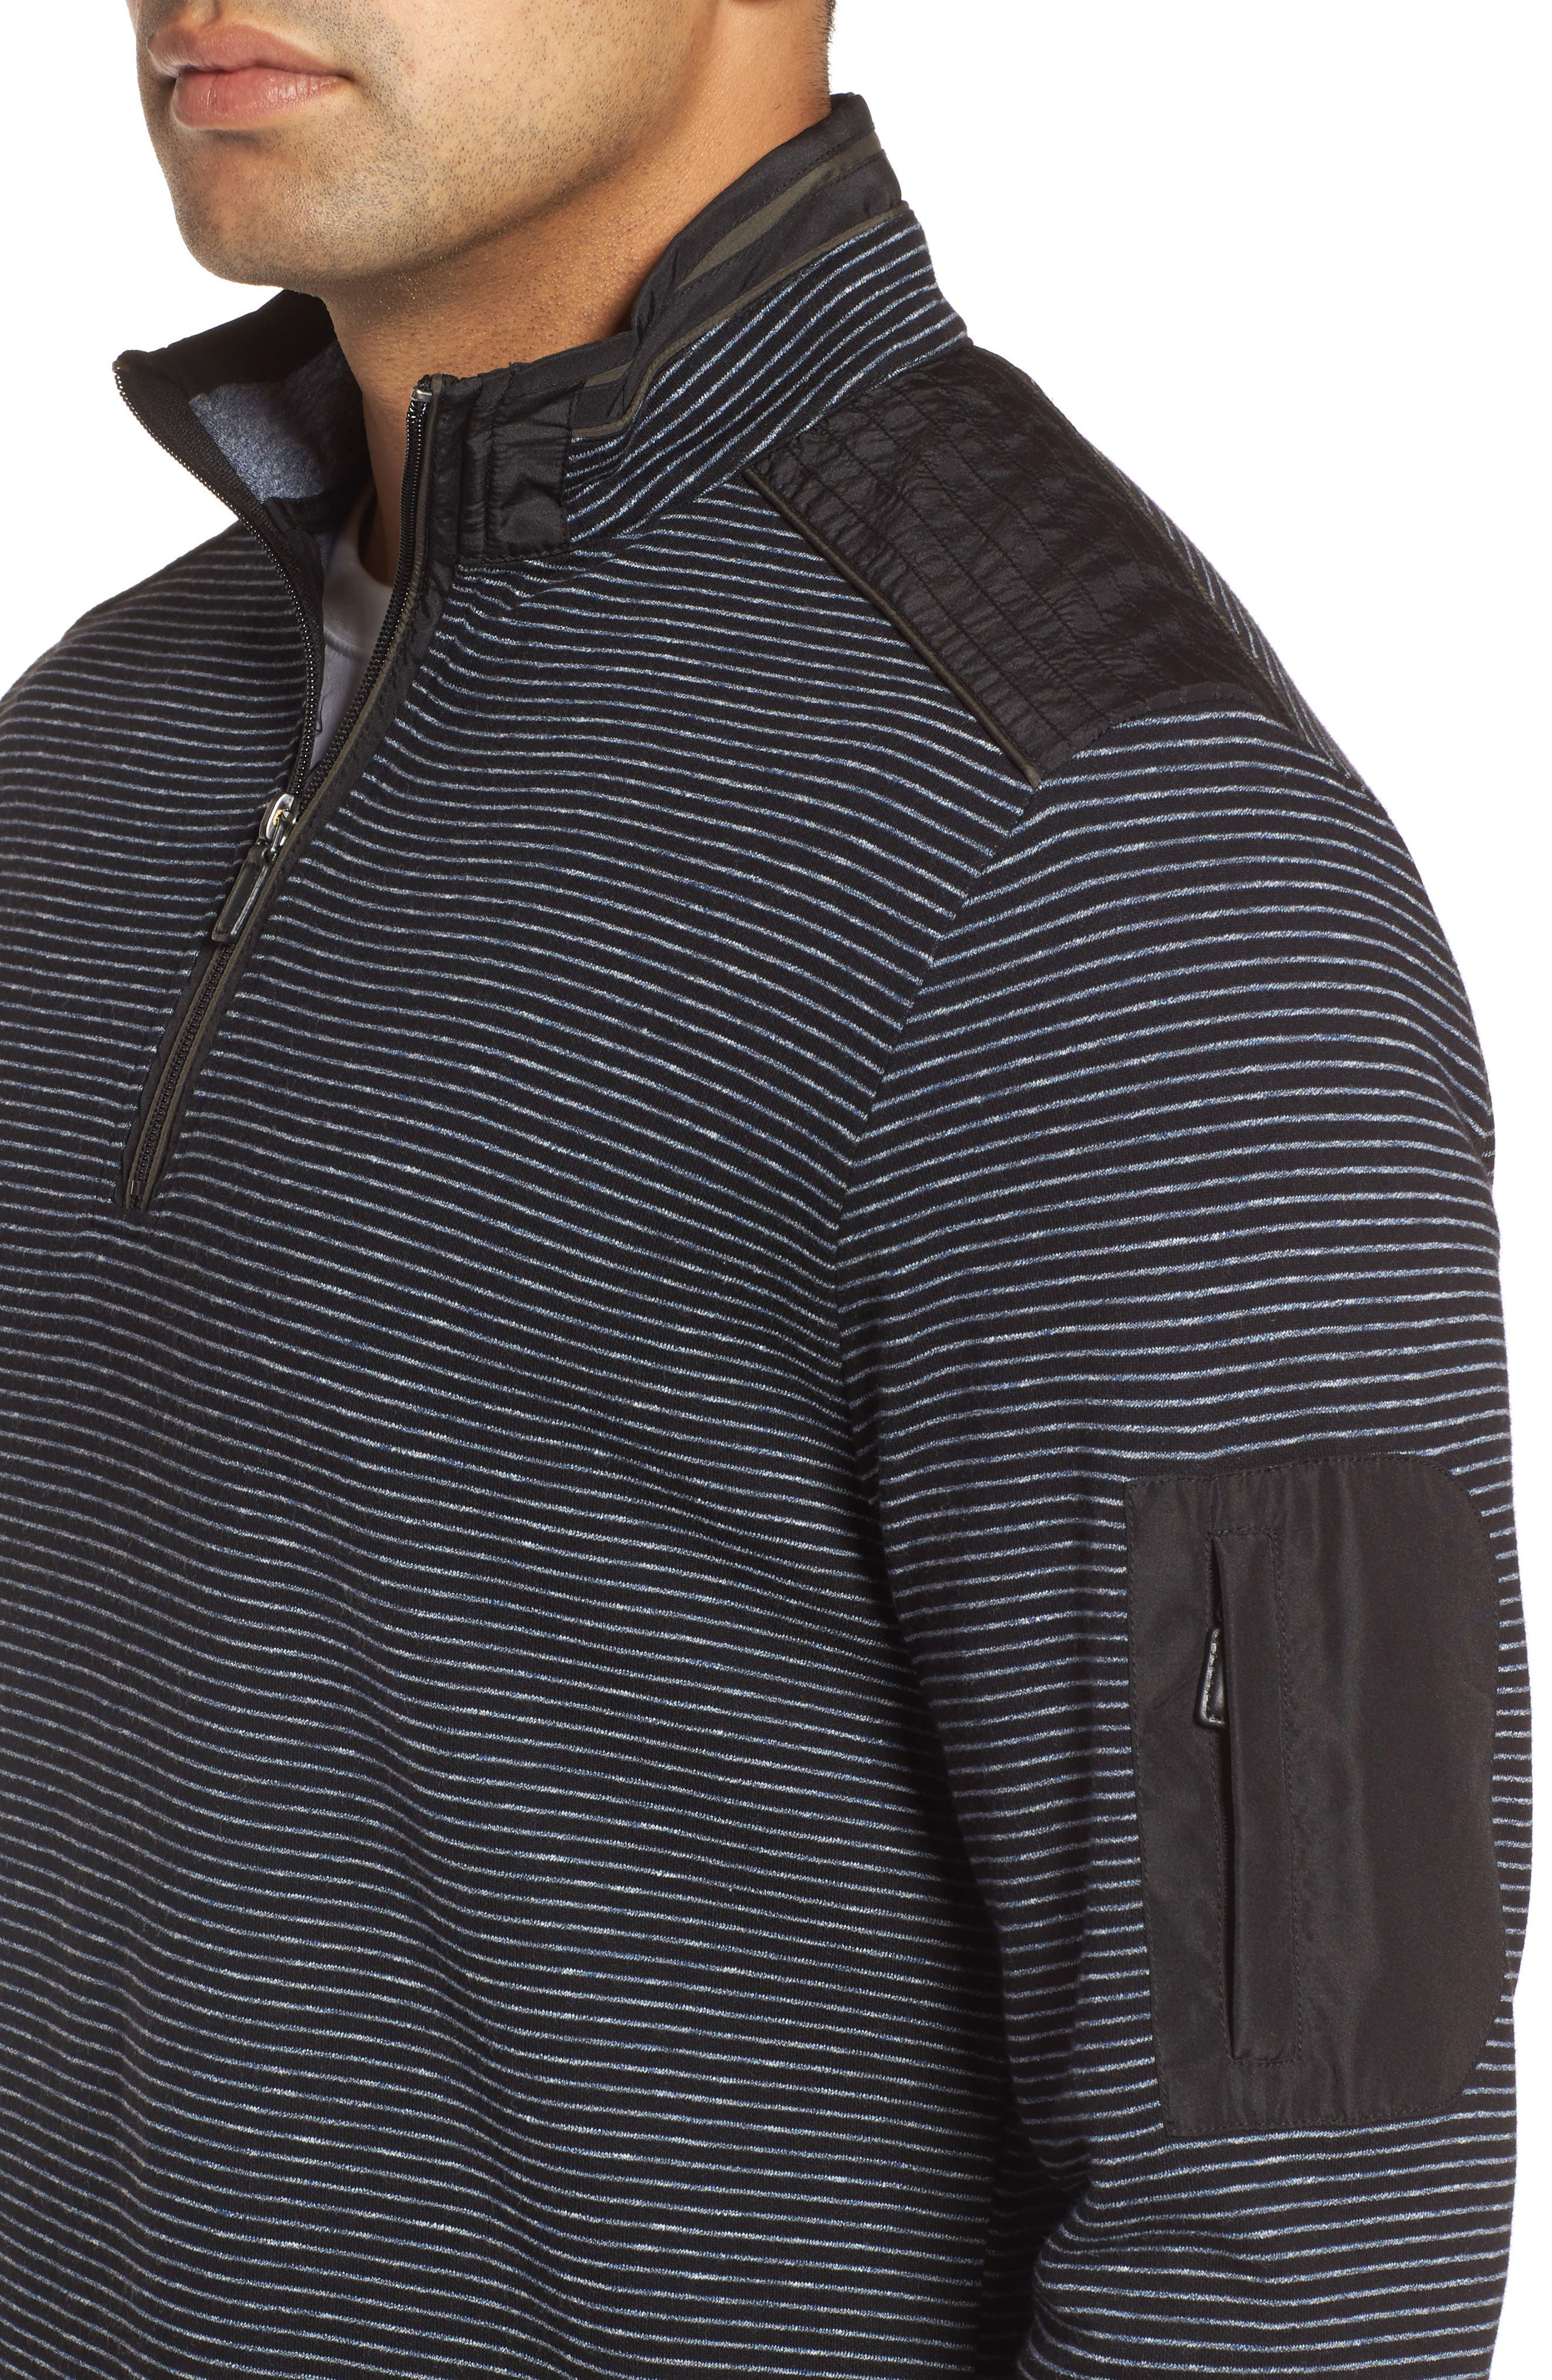 Classic Fit Pinstripe Quarter Zip Pullover,                             Alternate thumbnail 4, color,                             001